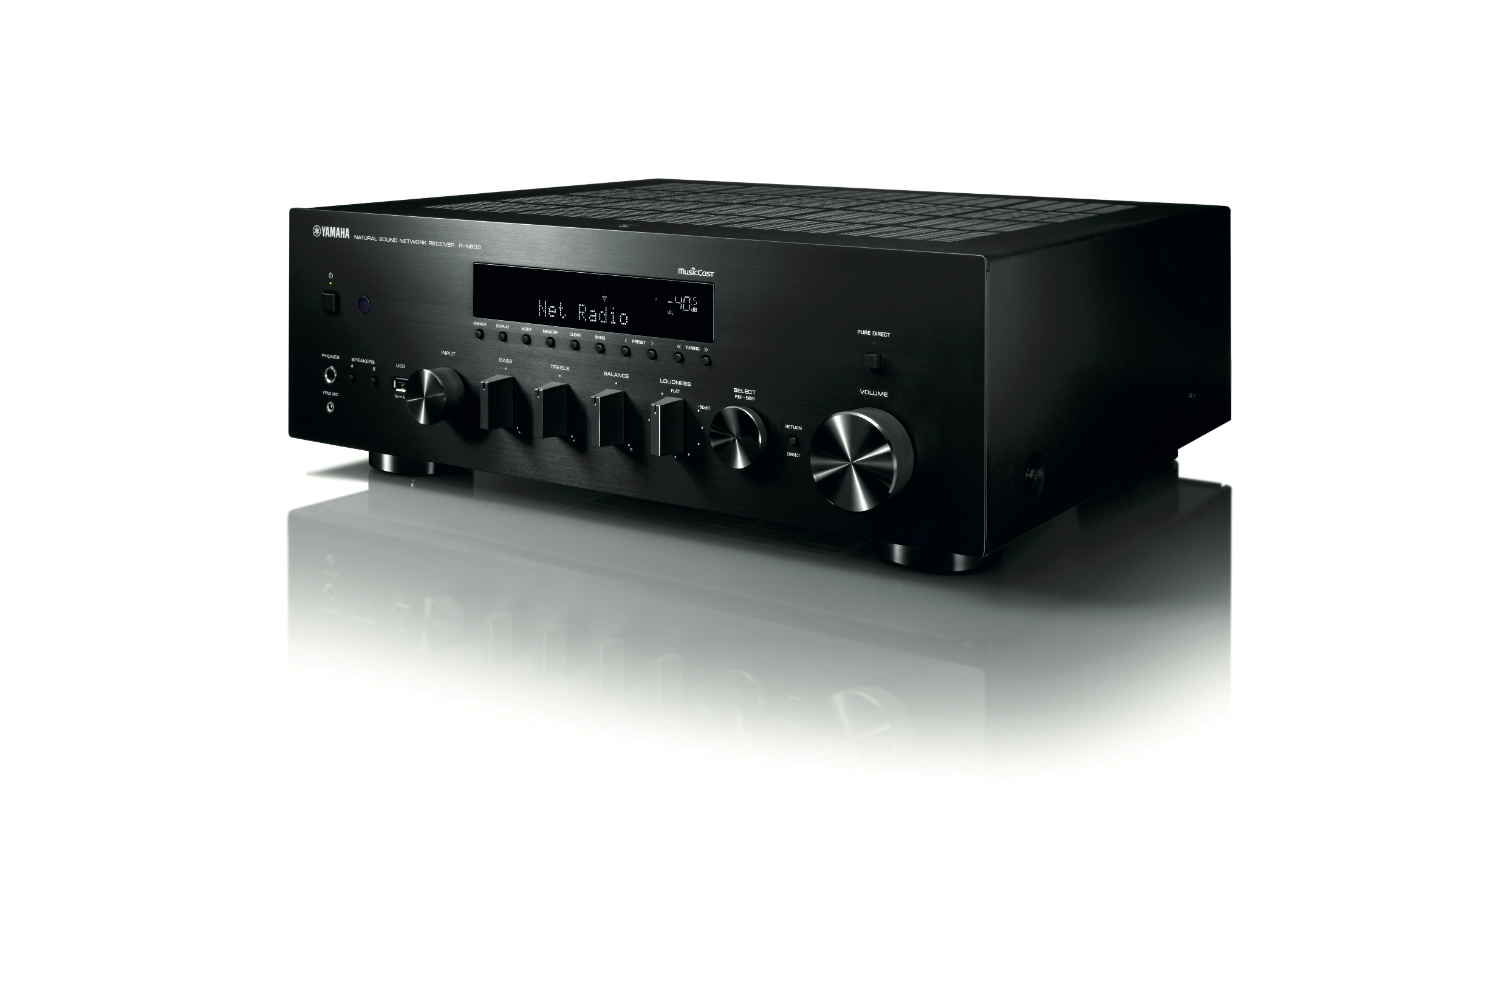 yamaha s r n803 stereo receiver will please both vinyl. Black Bedroom Furniture Sets. Home Design Ideas